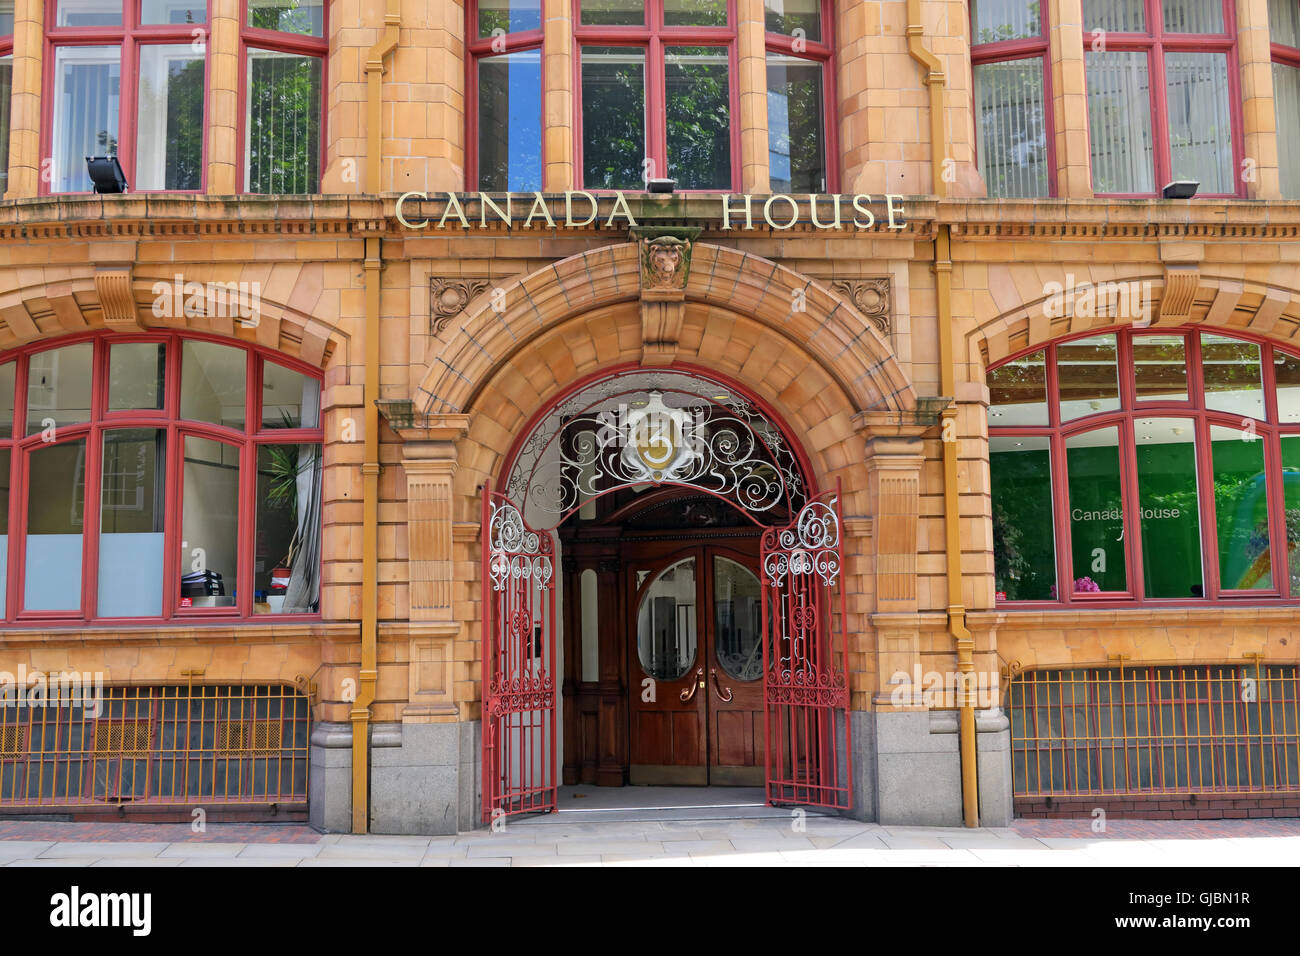 Canada House, 3 Chepstow St, Manchester, North West England, UK,  M1 5FW - Stock Image